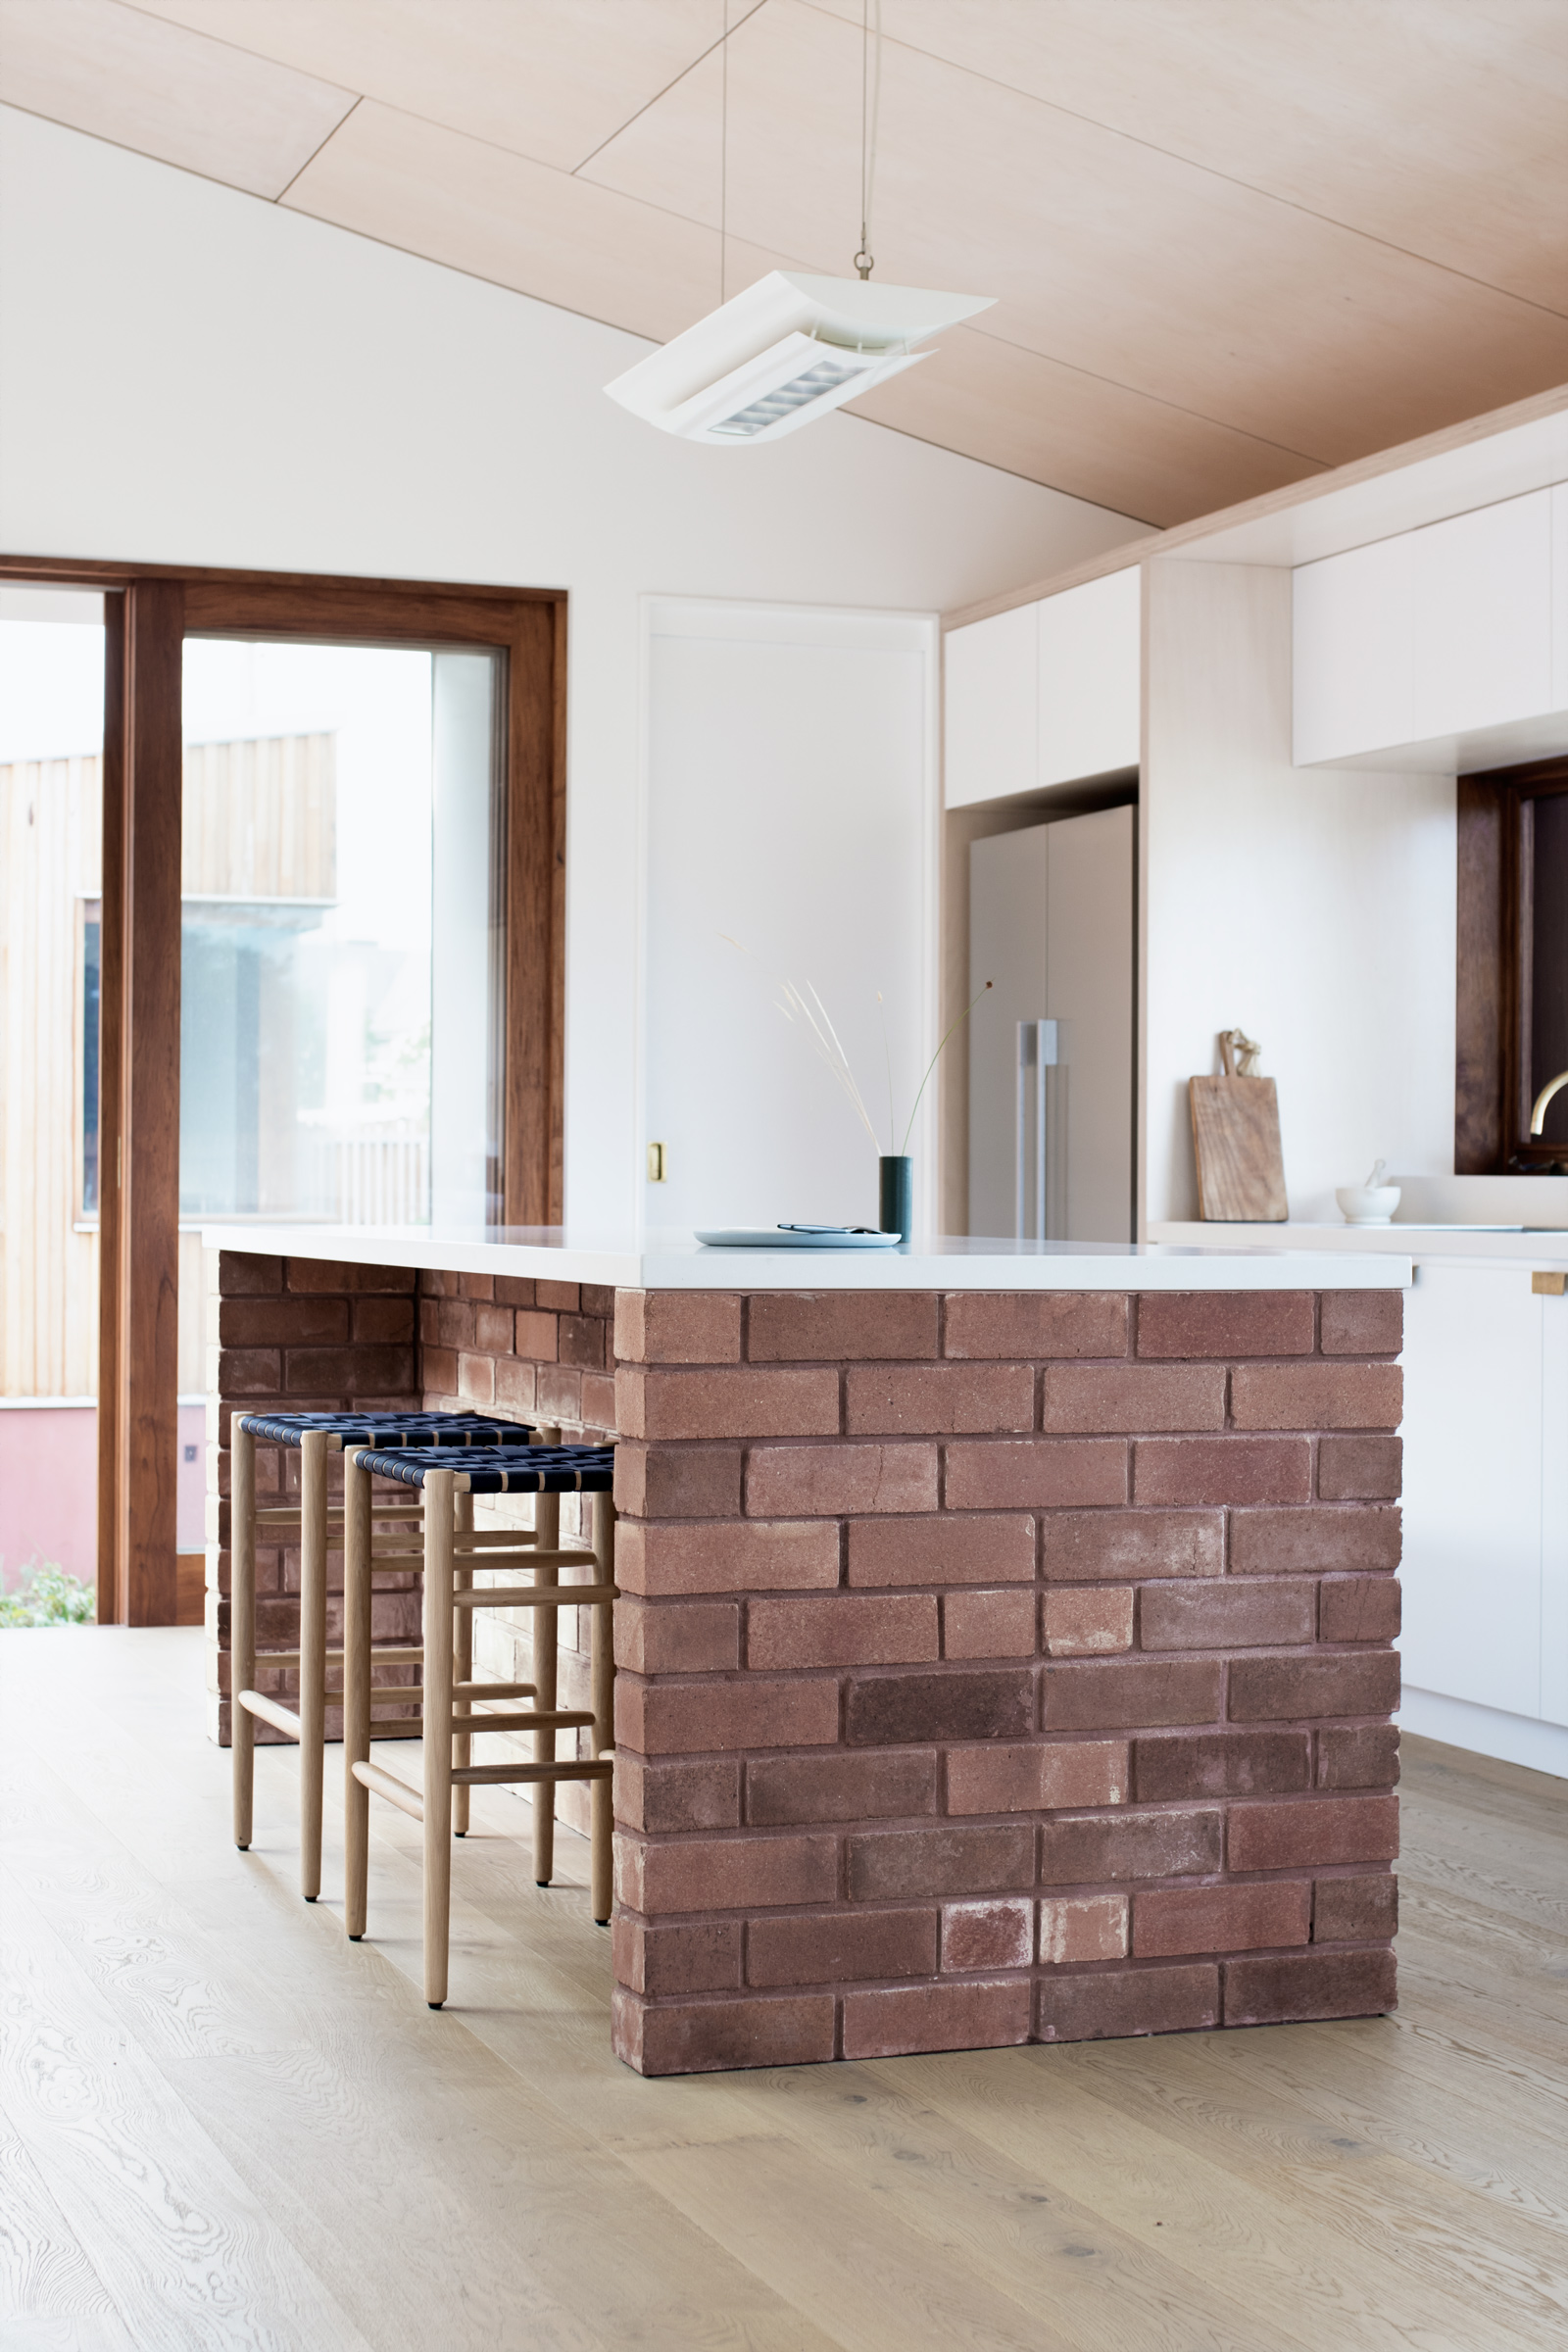 SYDNEY-RESIDENTIAL-ARCHITECT-TRIAS-STUDIO-THREE-PIECE-HOUSE-P09-BH.jpg